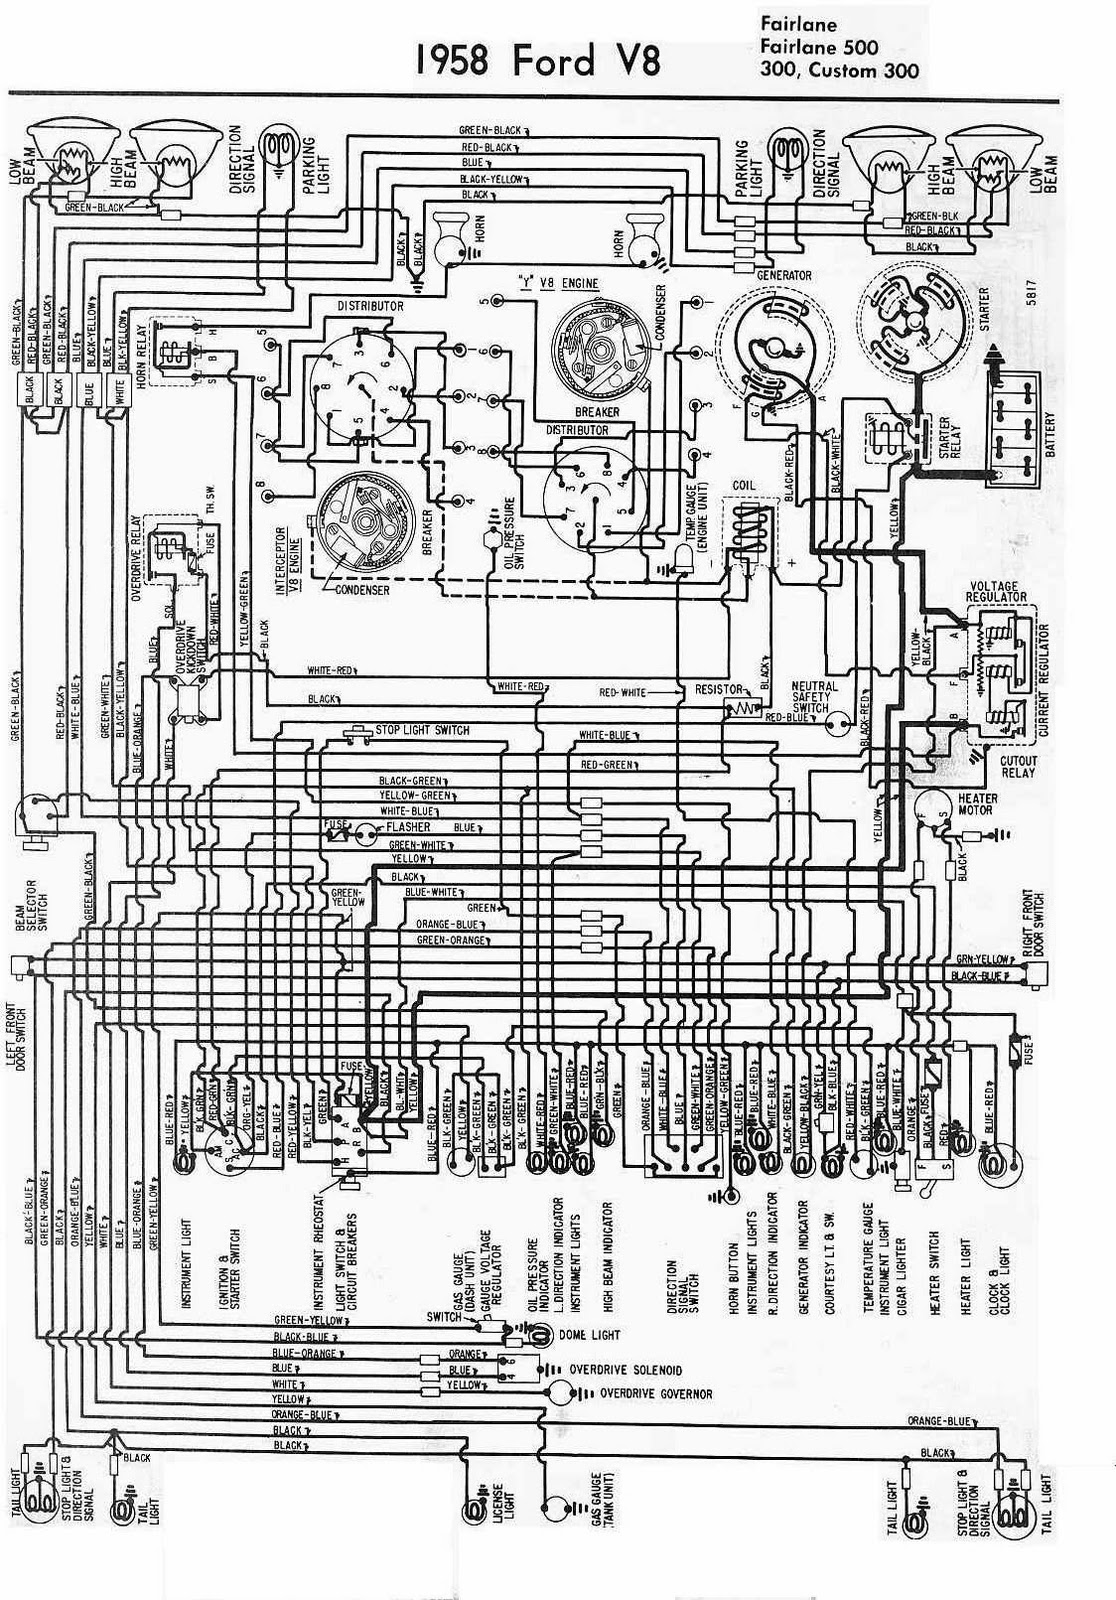 1955 ford wiring wiring diagram centre 1955 ford radio wiring wiring diagram schematicwiring diagram 1955 ford [ 1116 x 1600 Pixel ]